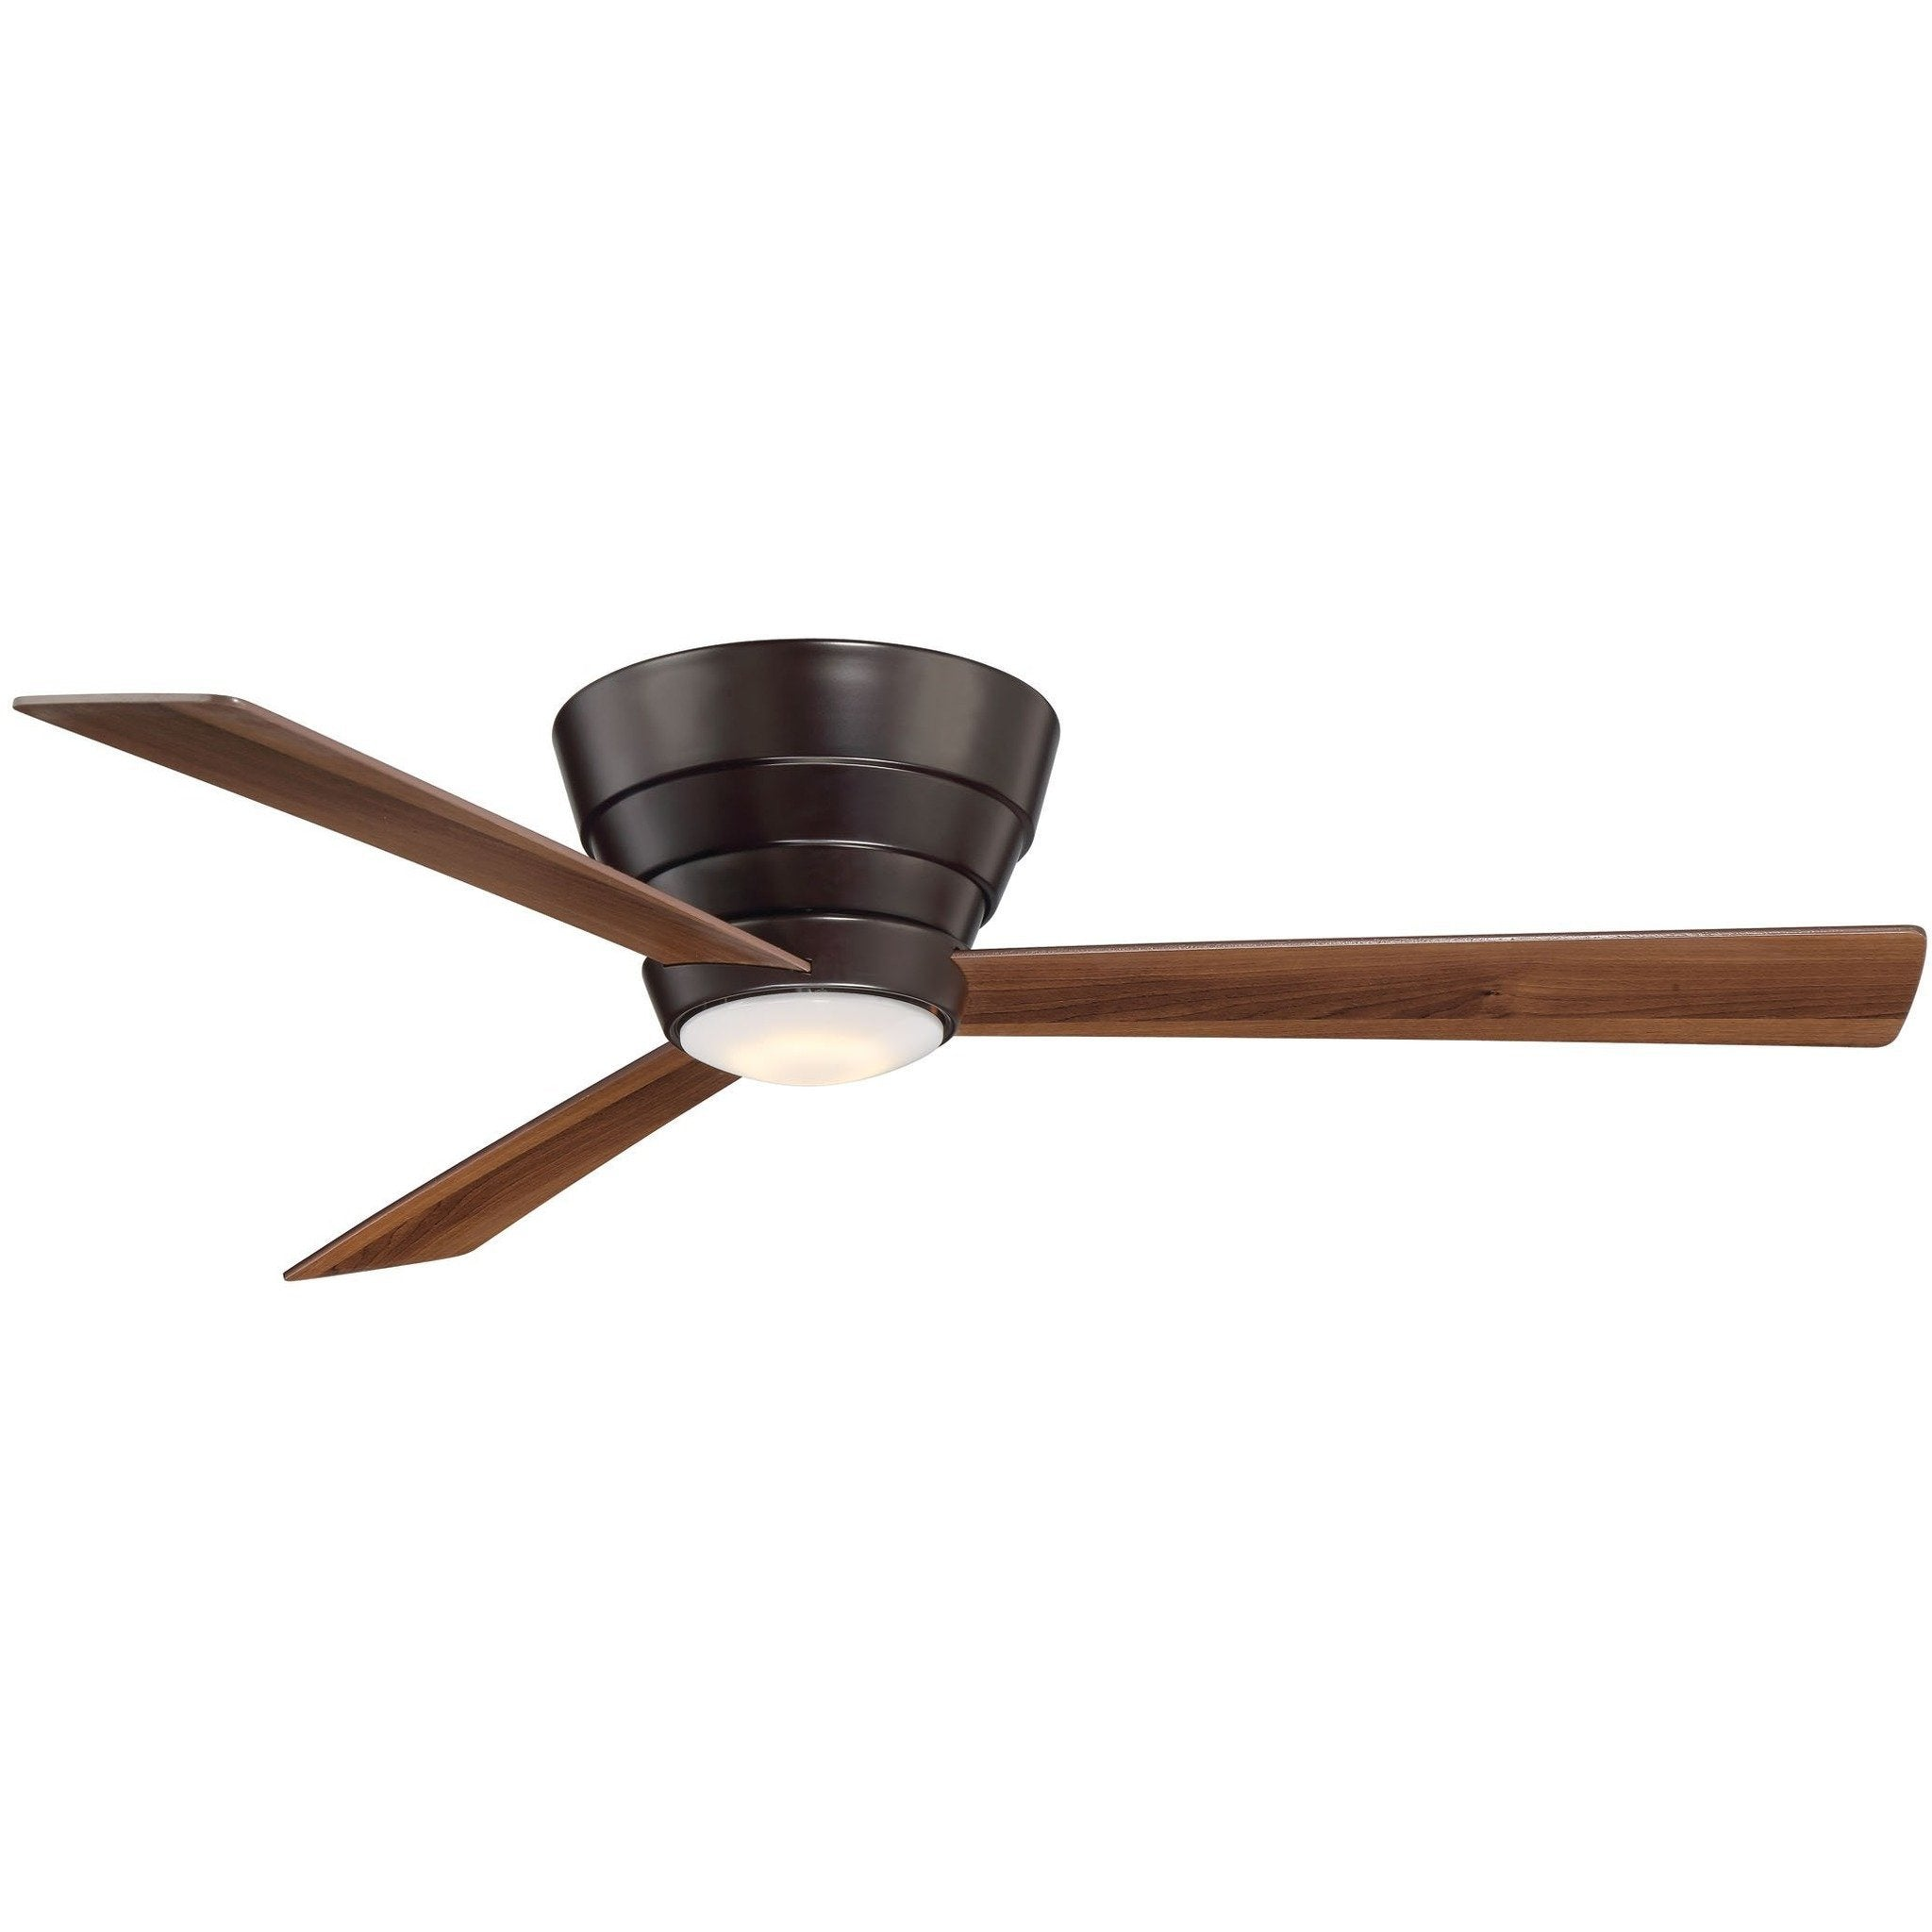 Wind River Niva Flushmount Ceiling Fan